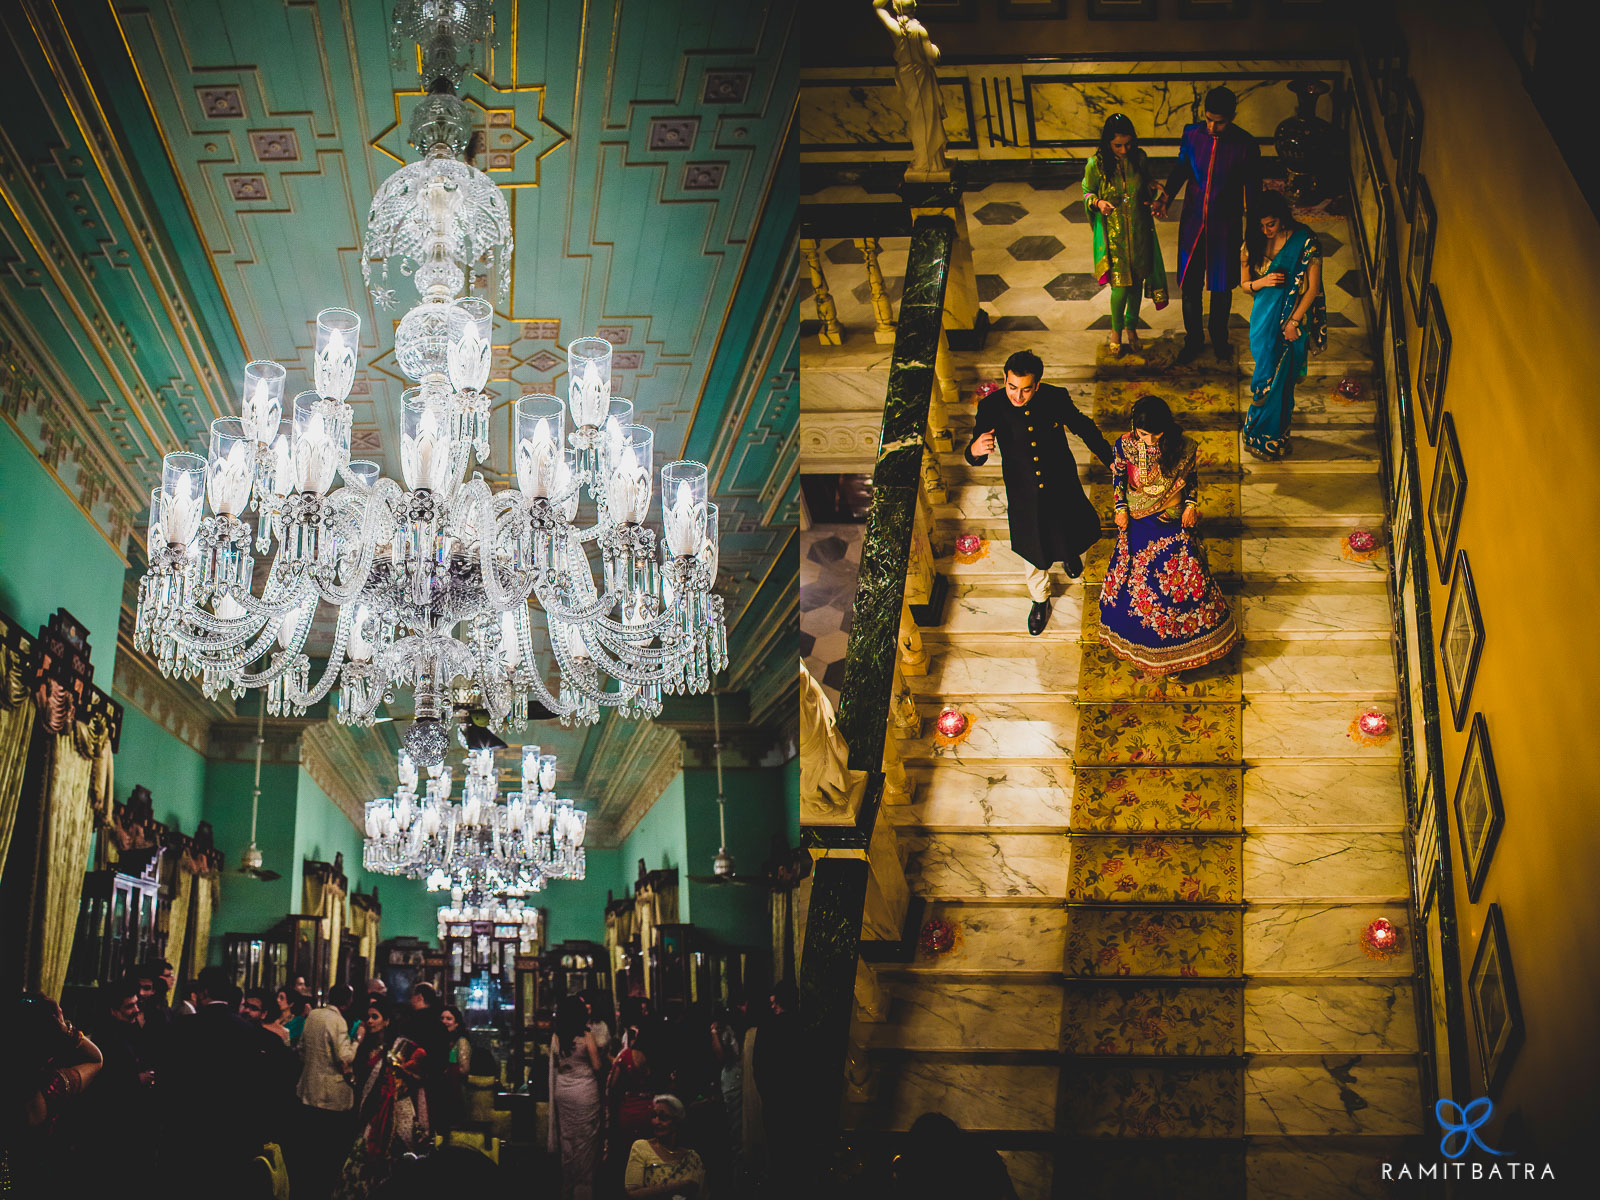 A Spectacular Wedding At The Stunning Taj Falaknuma Palace, Hyderabad- Shot By Ramit Batra